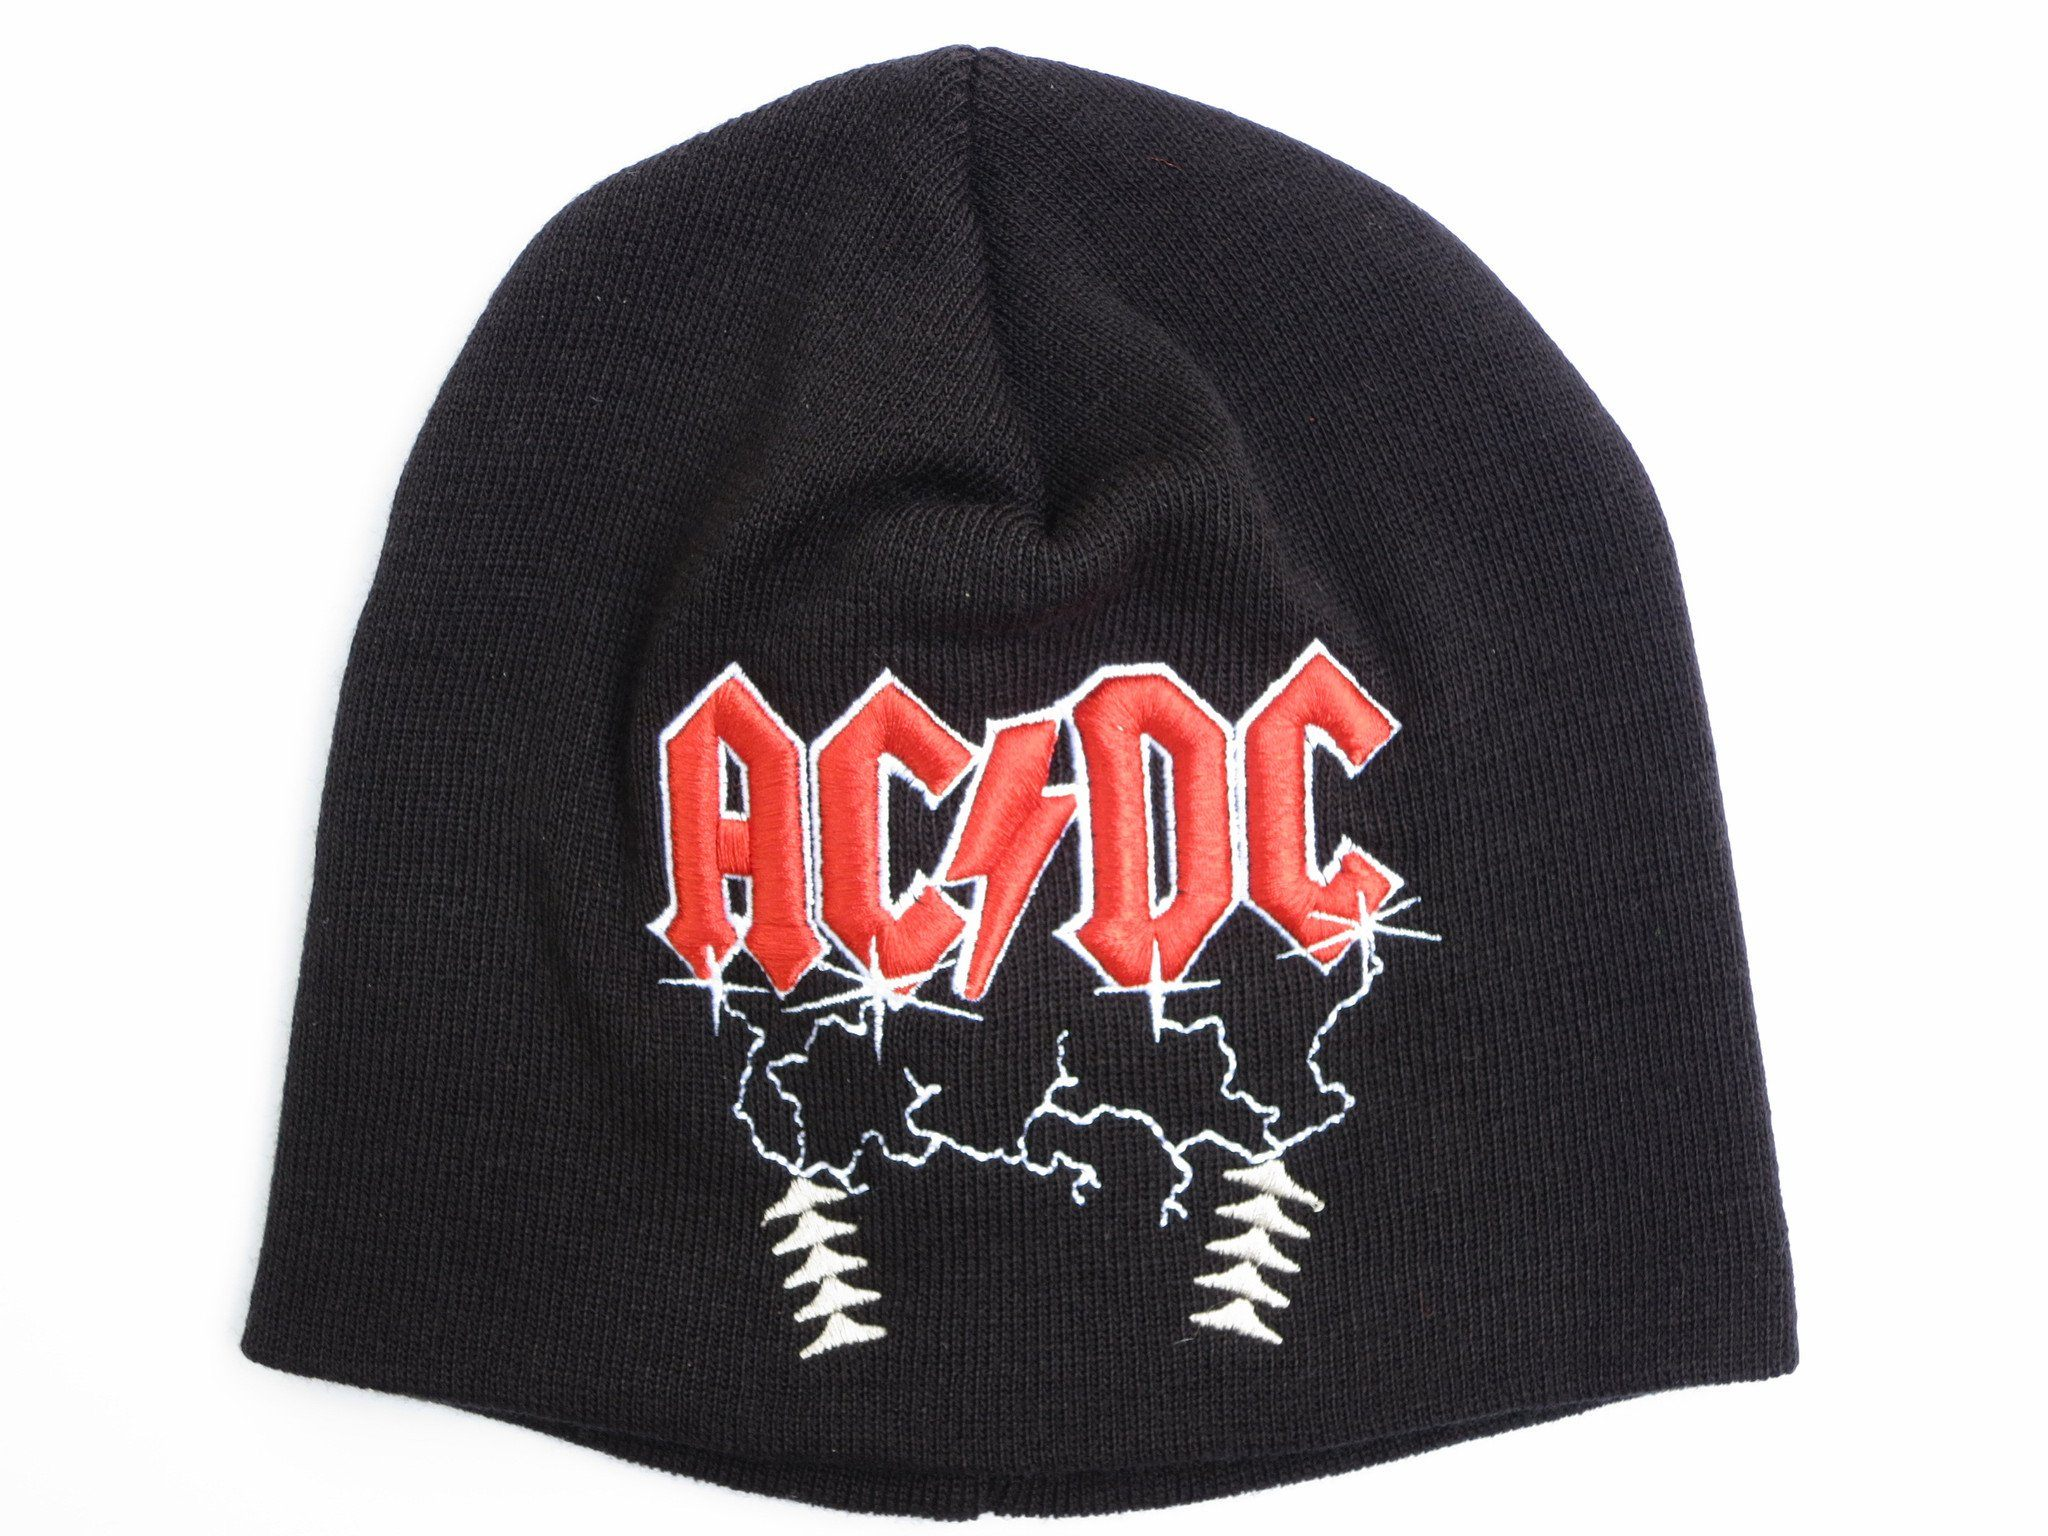 ACDC AC/DC Electric Logo Winter Wool Beanie Hat BNWT - A Patch E Store